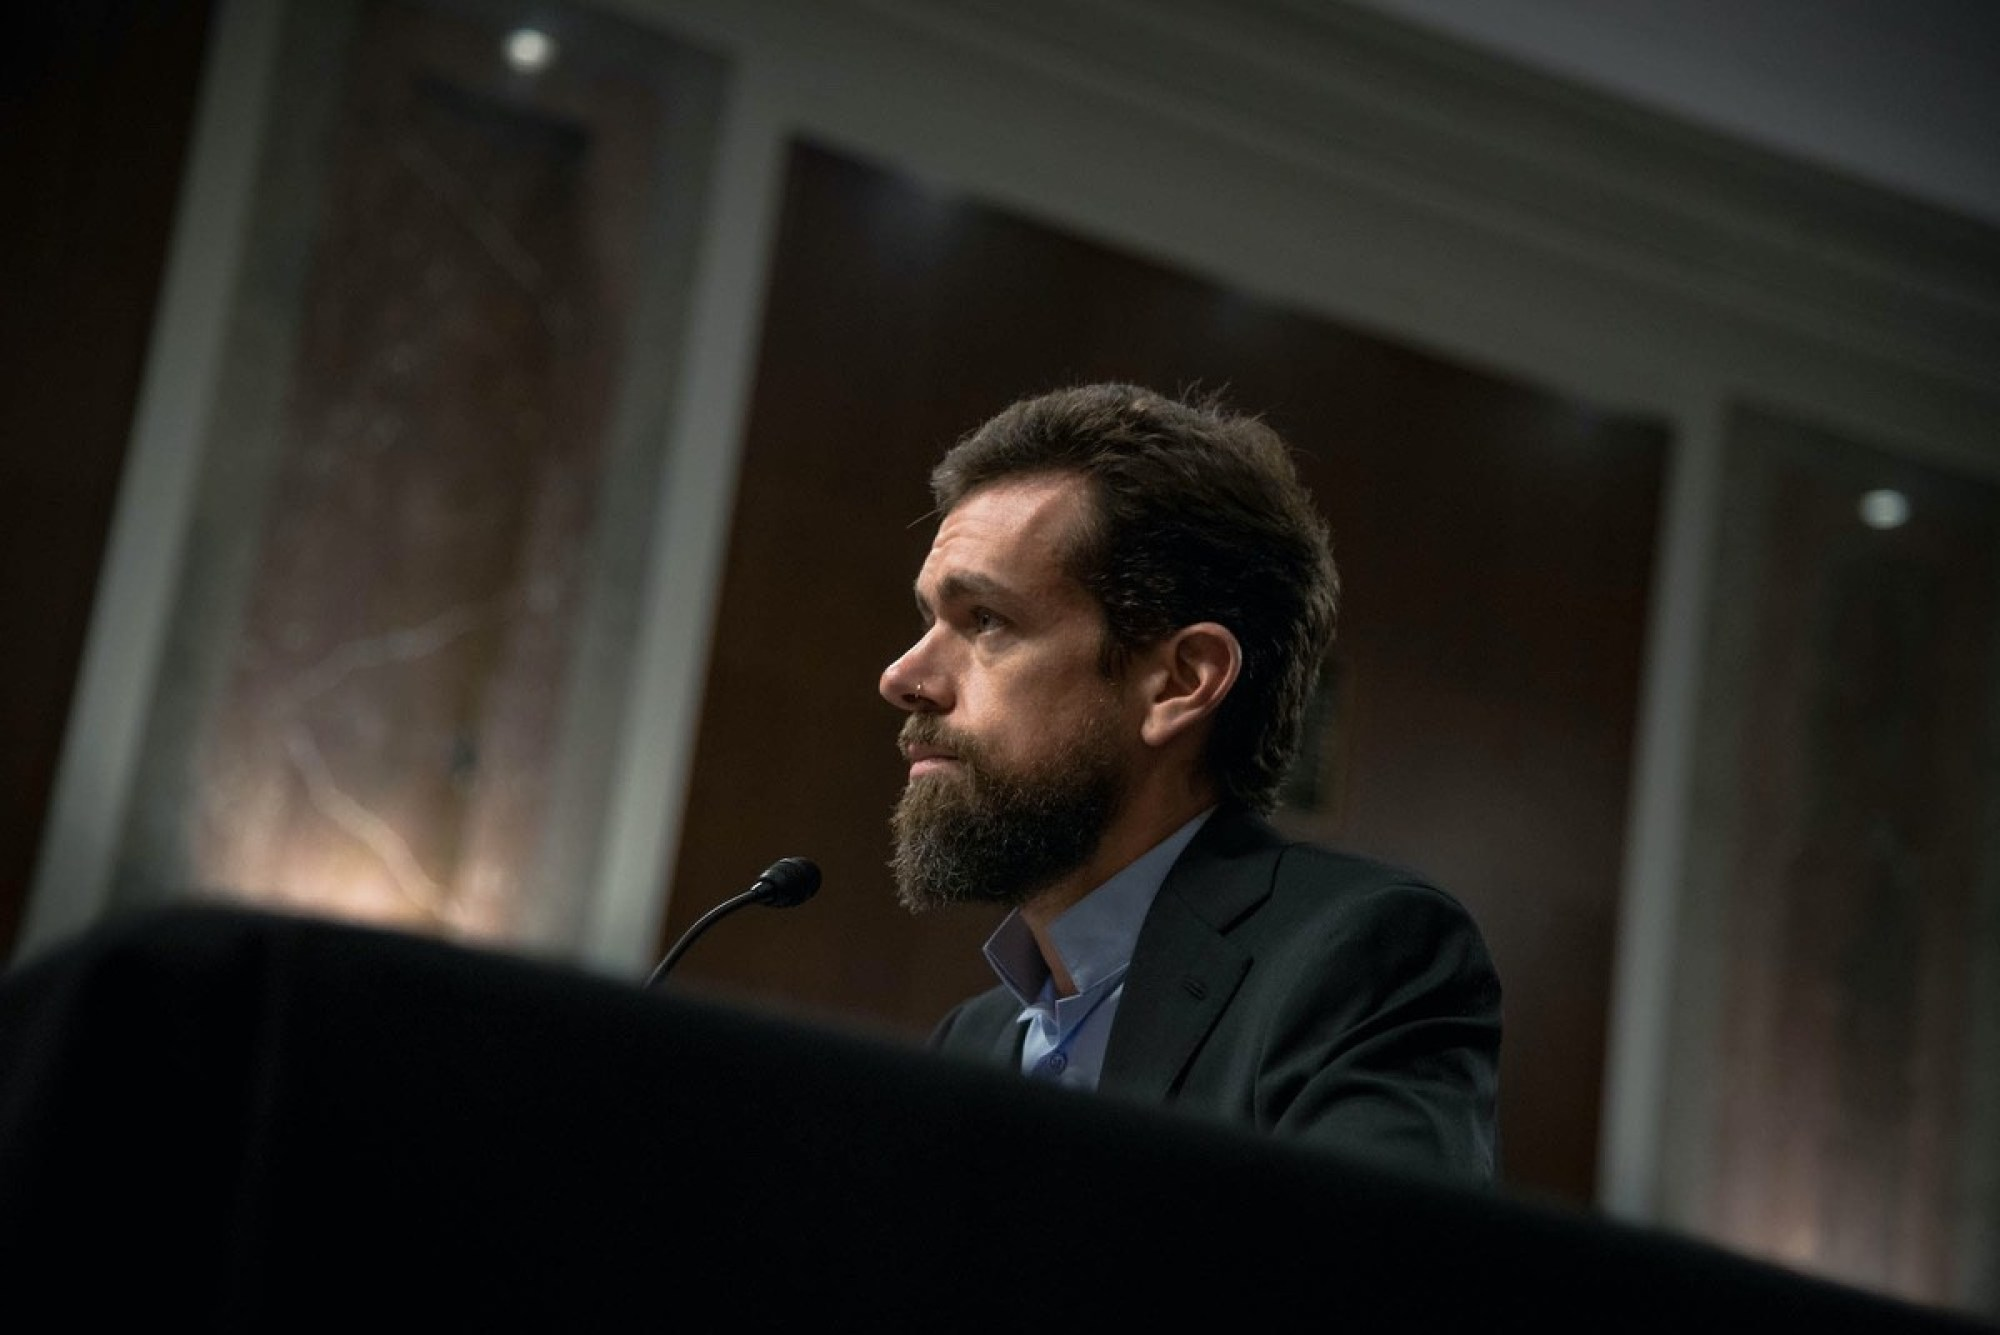 Twitter Co-Founder and CEO Jack Dorsey testifying before the Senate Intelligence Committee - September 5, 2018. (Source: Senator Mark Warner's Team)